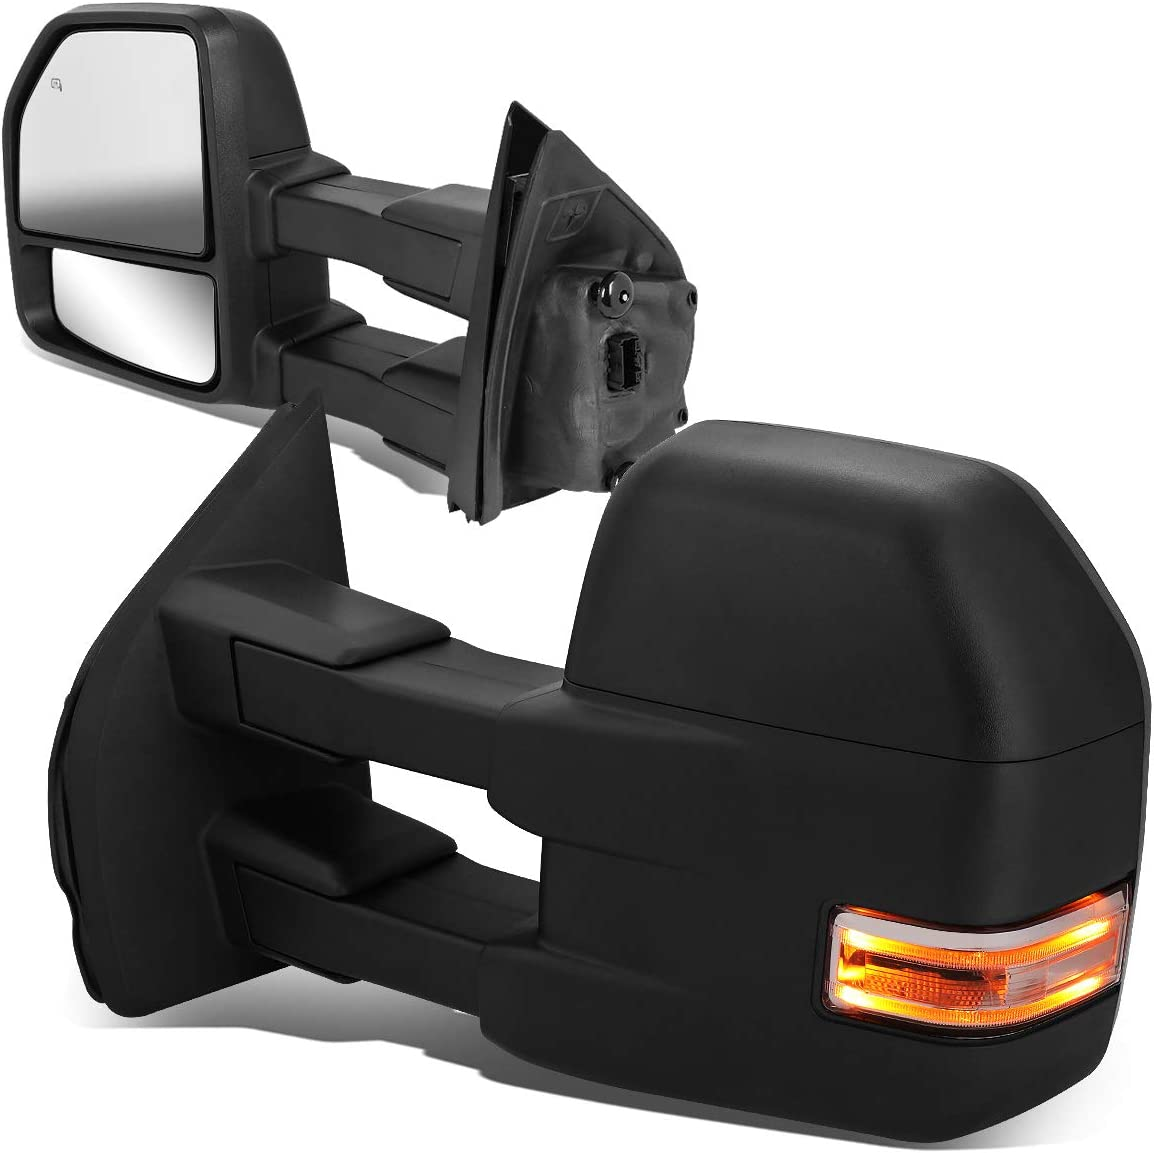 ,Black Smoke DNA MOTORING TWM-030-T888-BK-SM-L Powered+Heated Towing Mirror Set w//LED Turn Signal Left//Driver